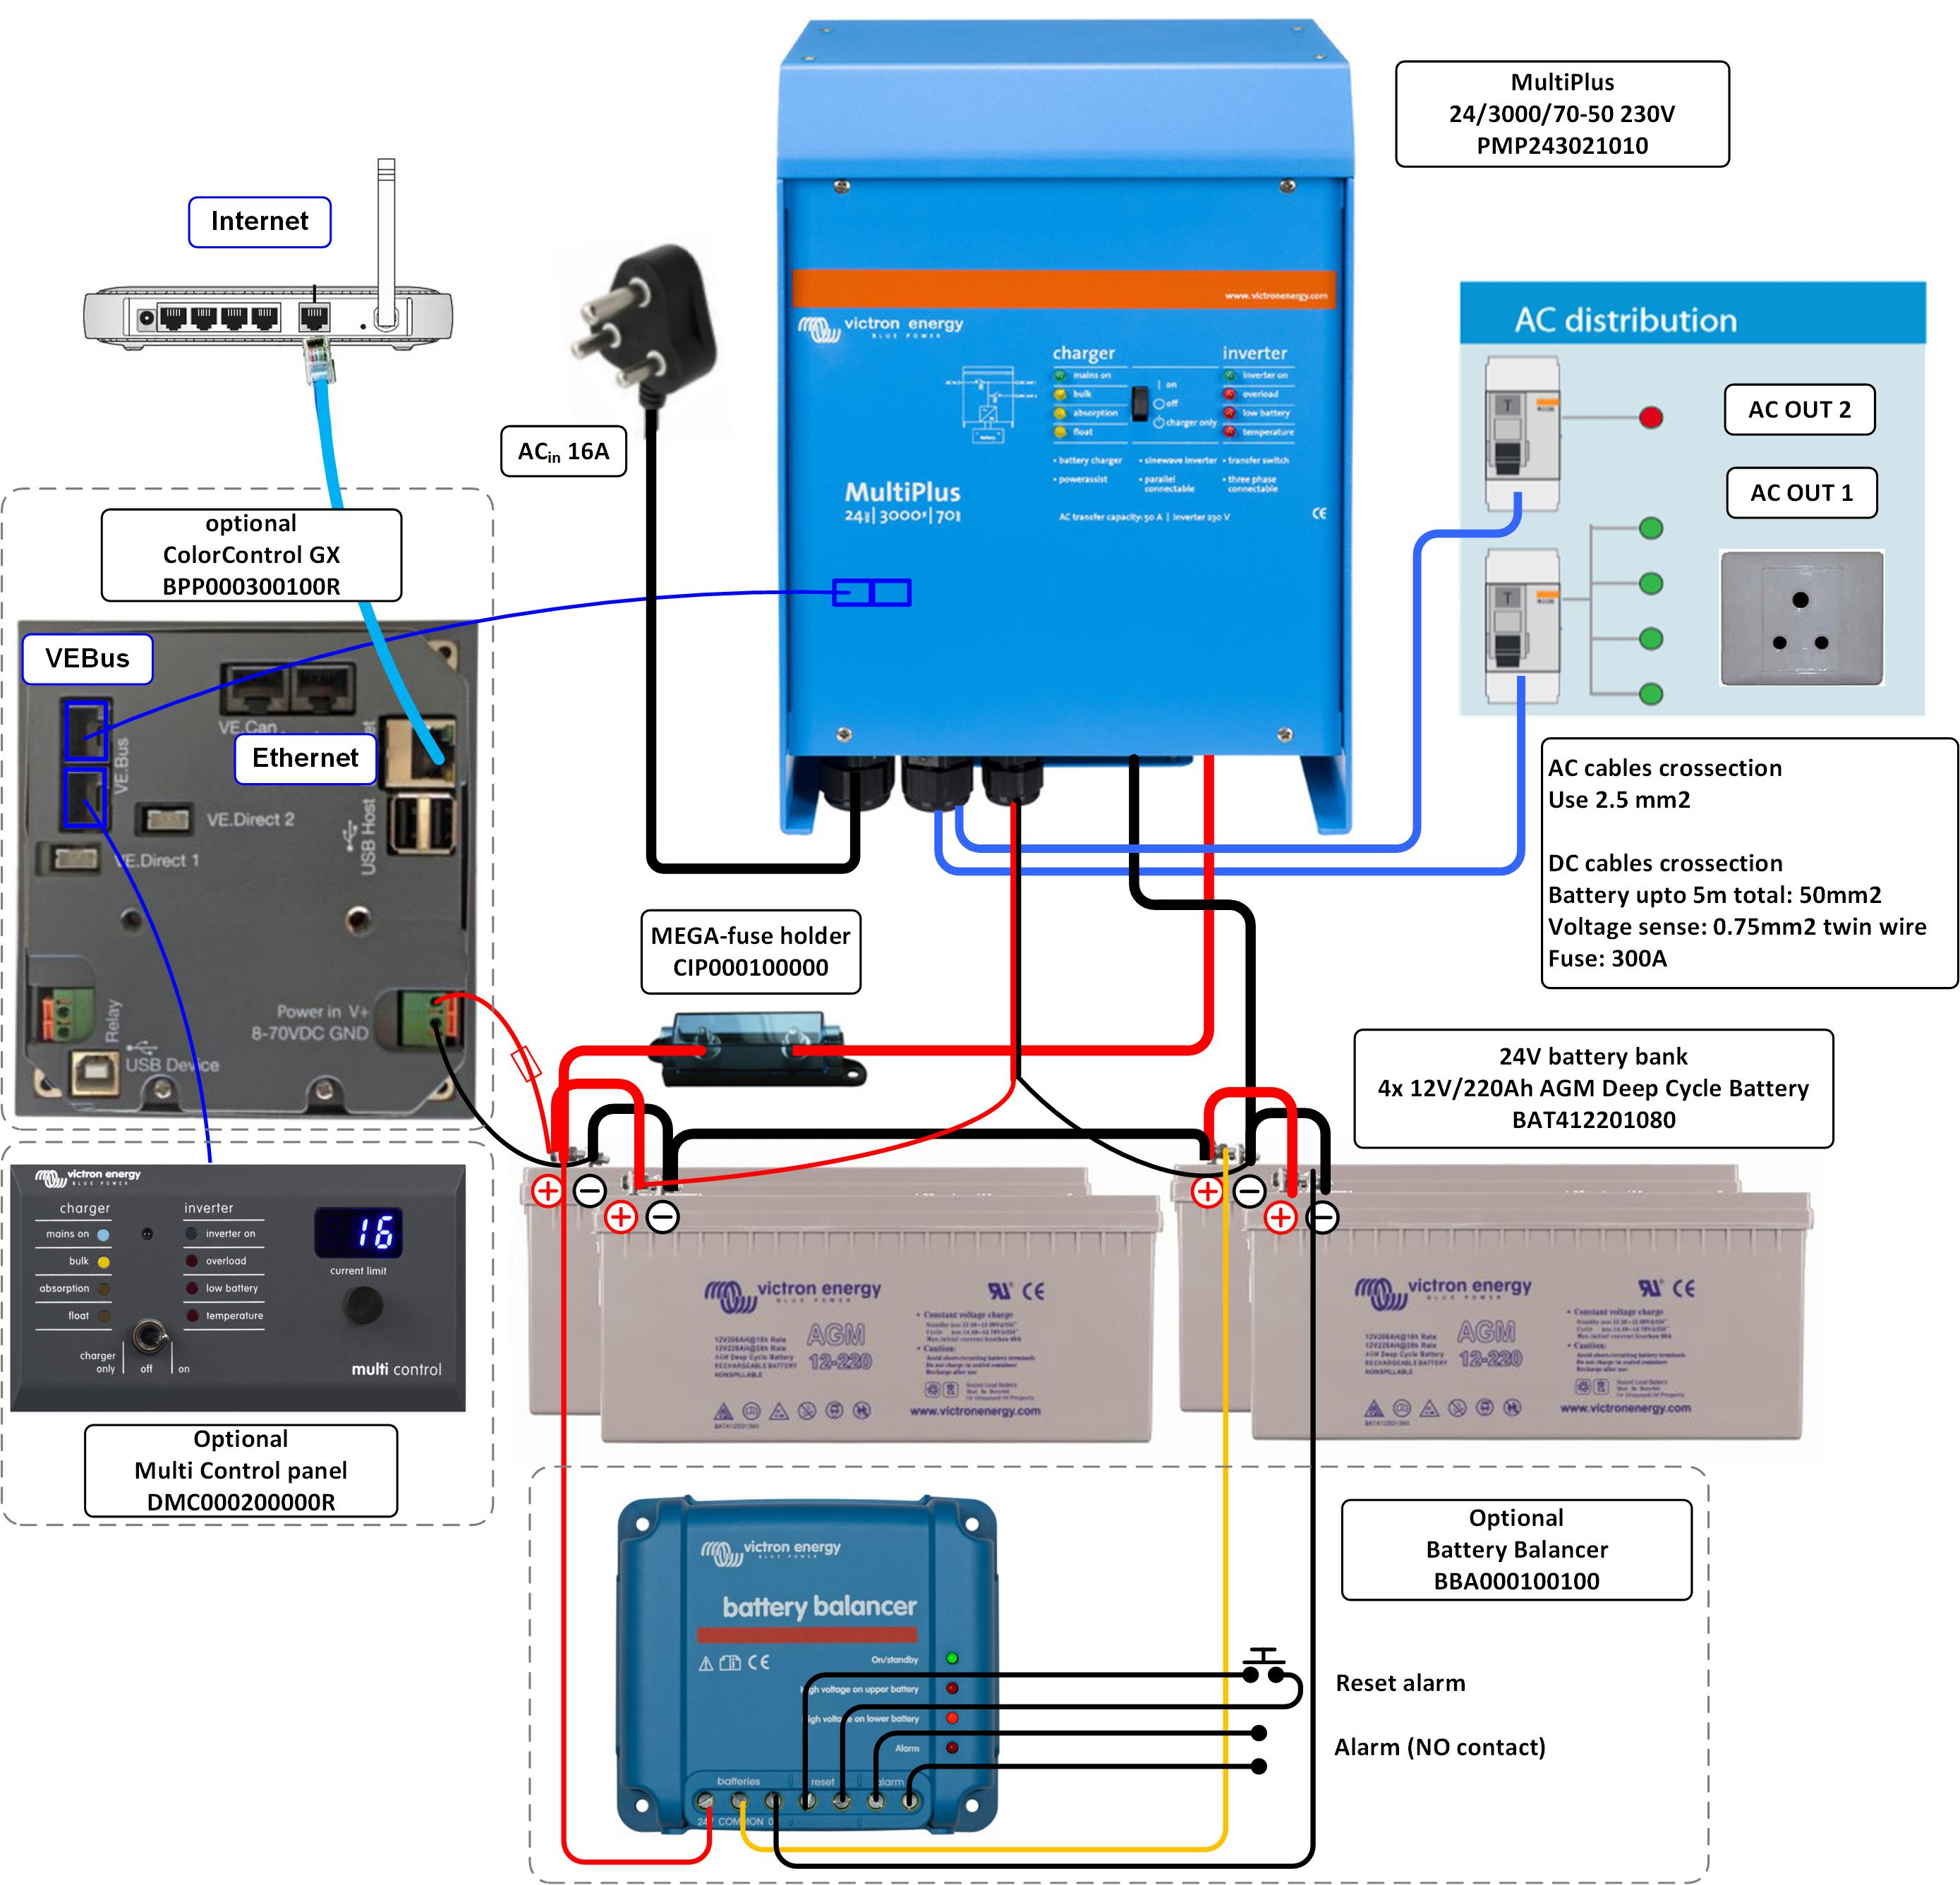 internet cable wiring diagram plug wire multiplus backup only 3000va / 24 volt [victron energy]